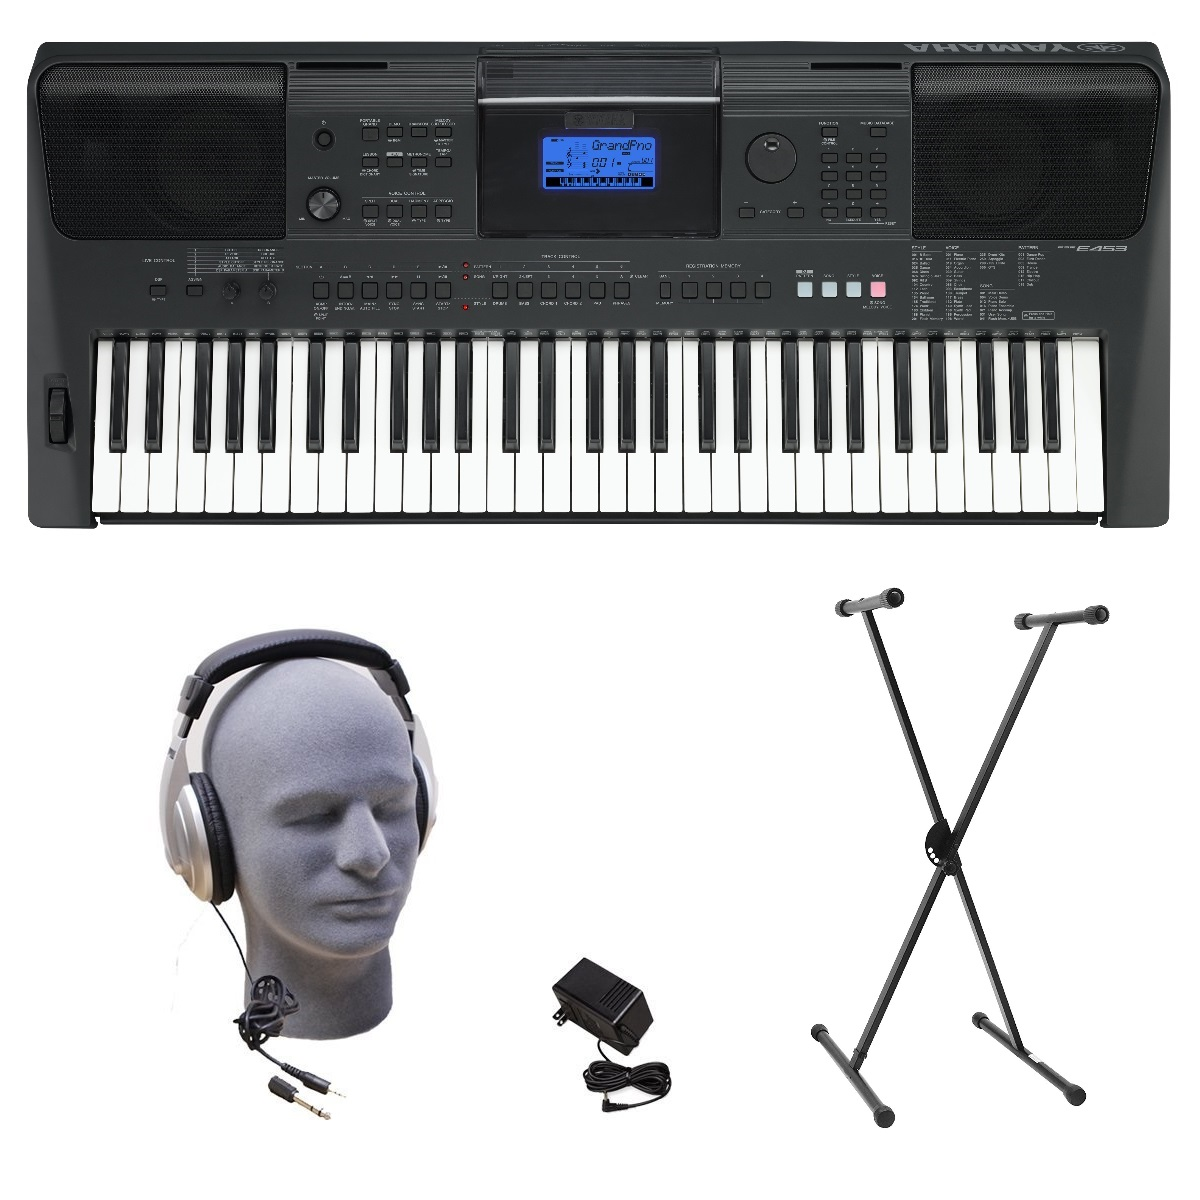 Yamaha PSRE453 Portable Keyboard with Headphones, Power Supply, & X-Style Stand by Yamaha